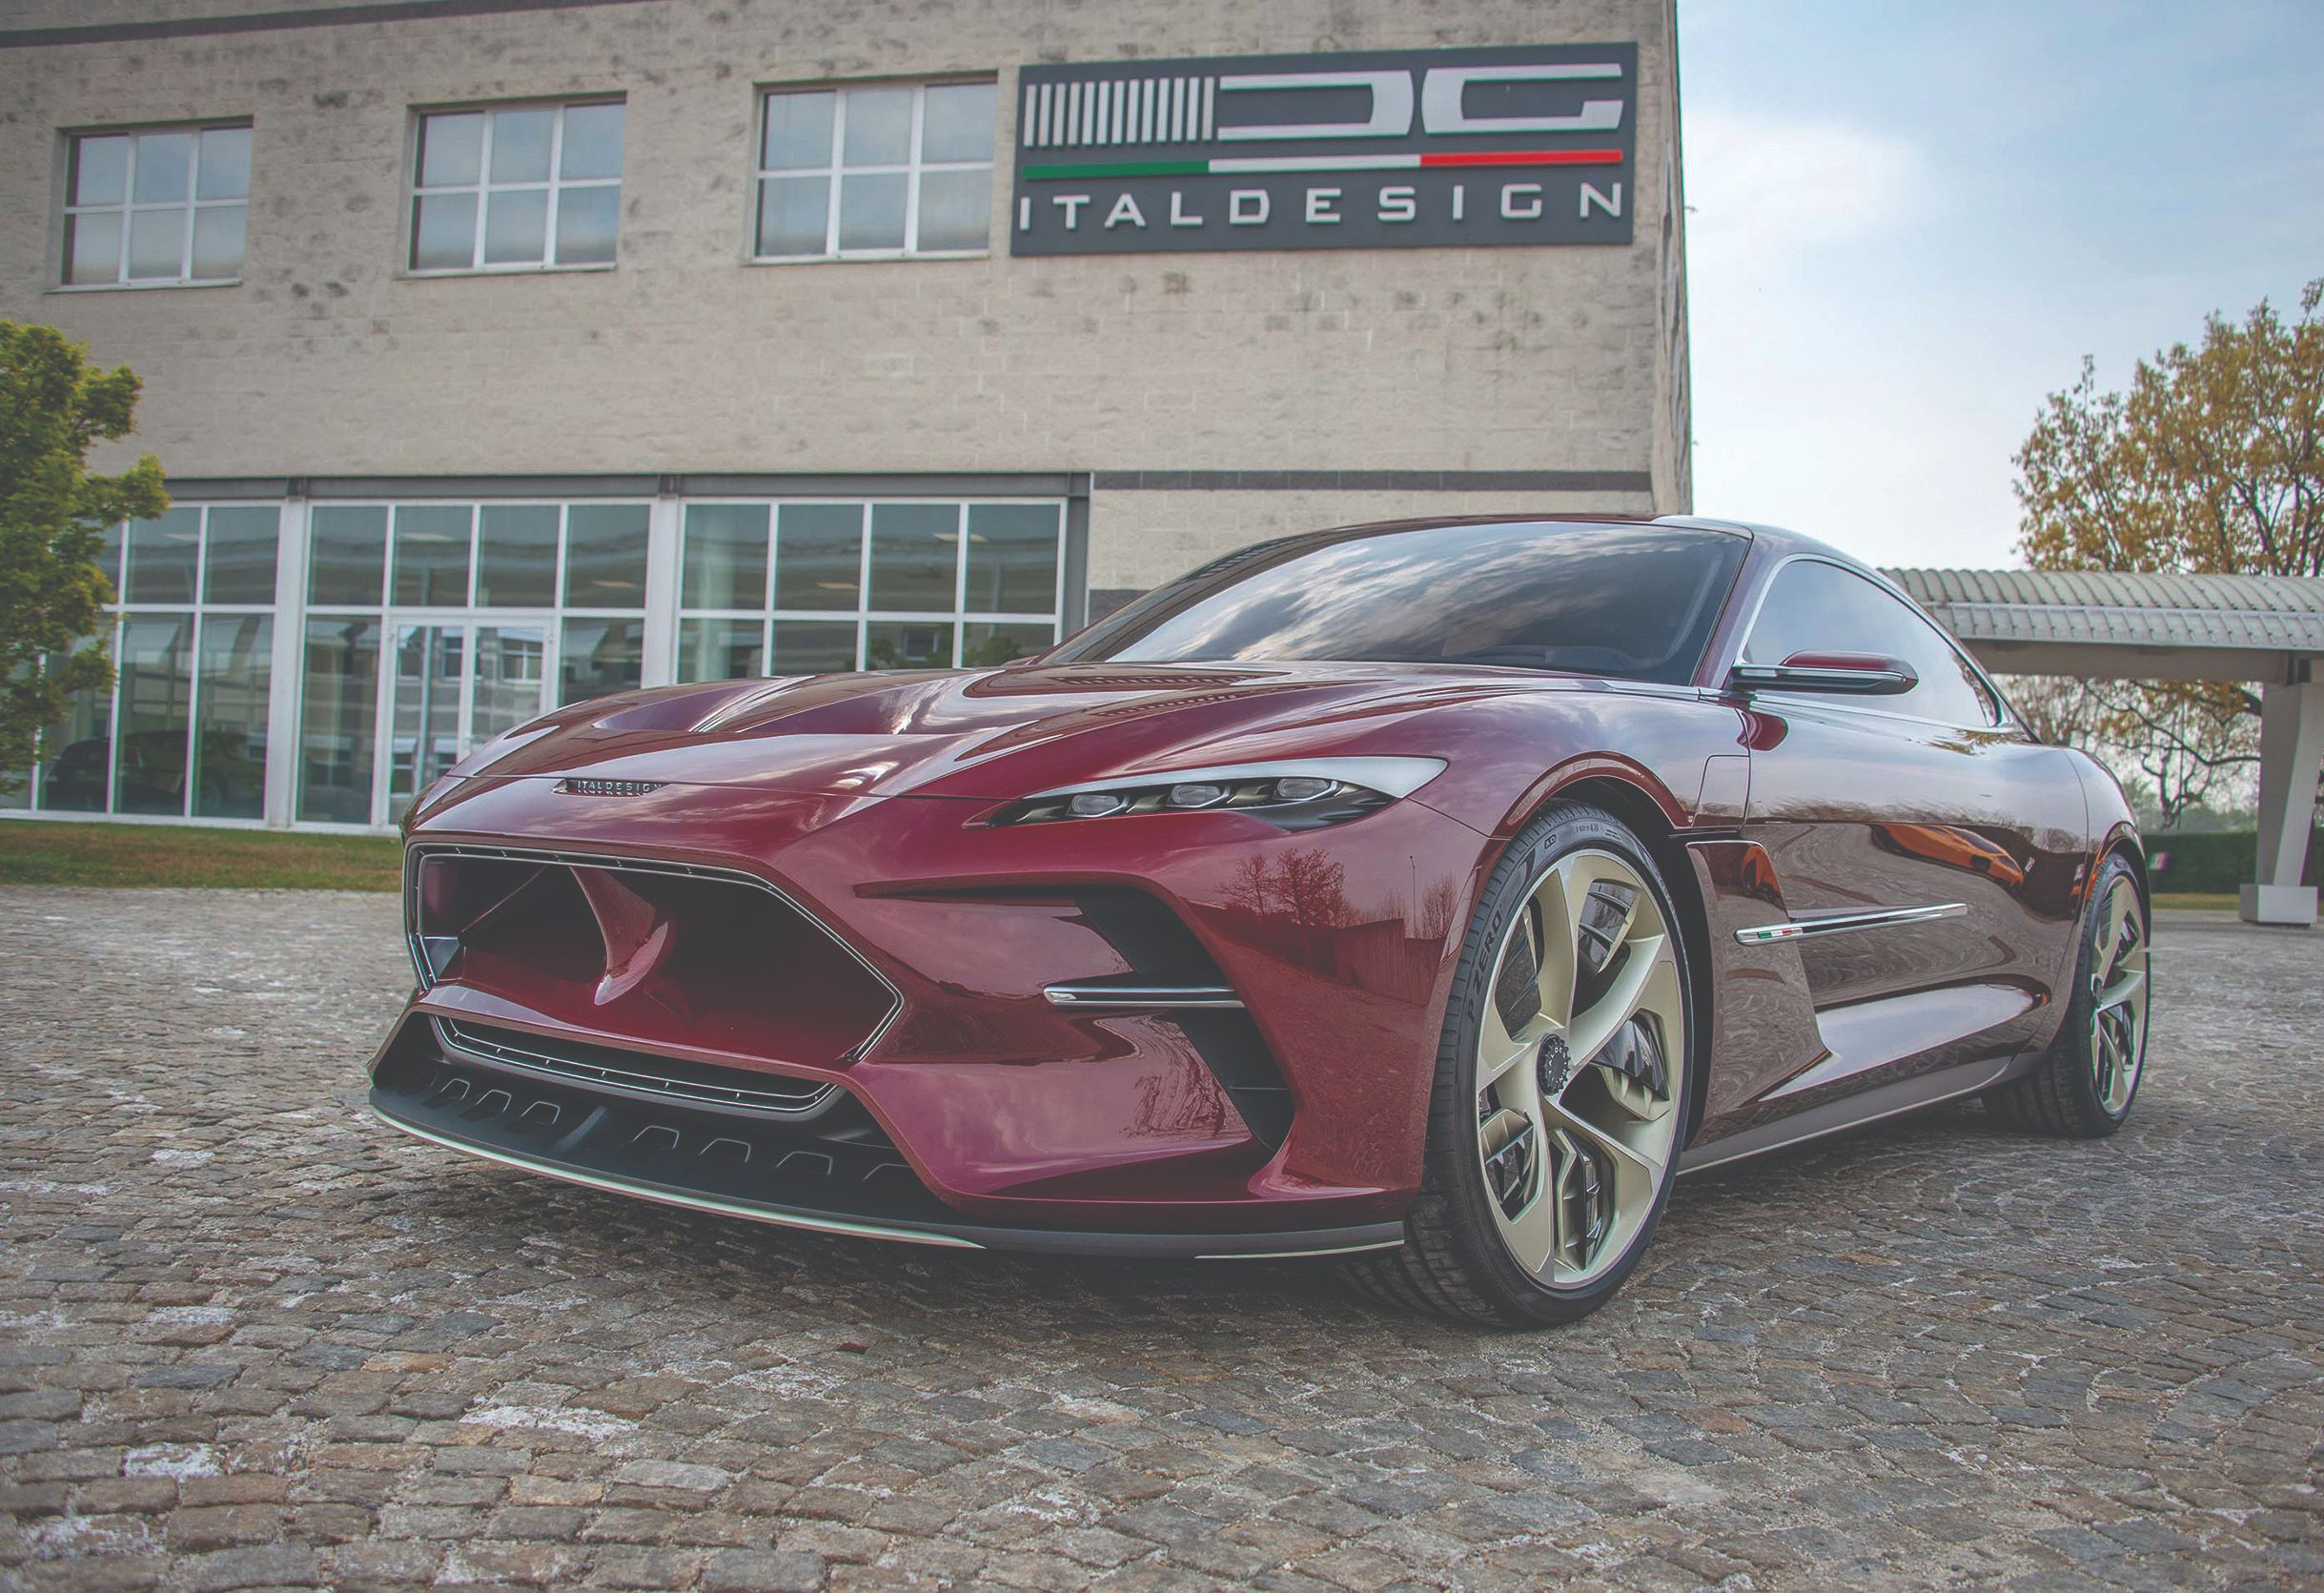 The Italdesign DaVinci concept car.